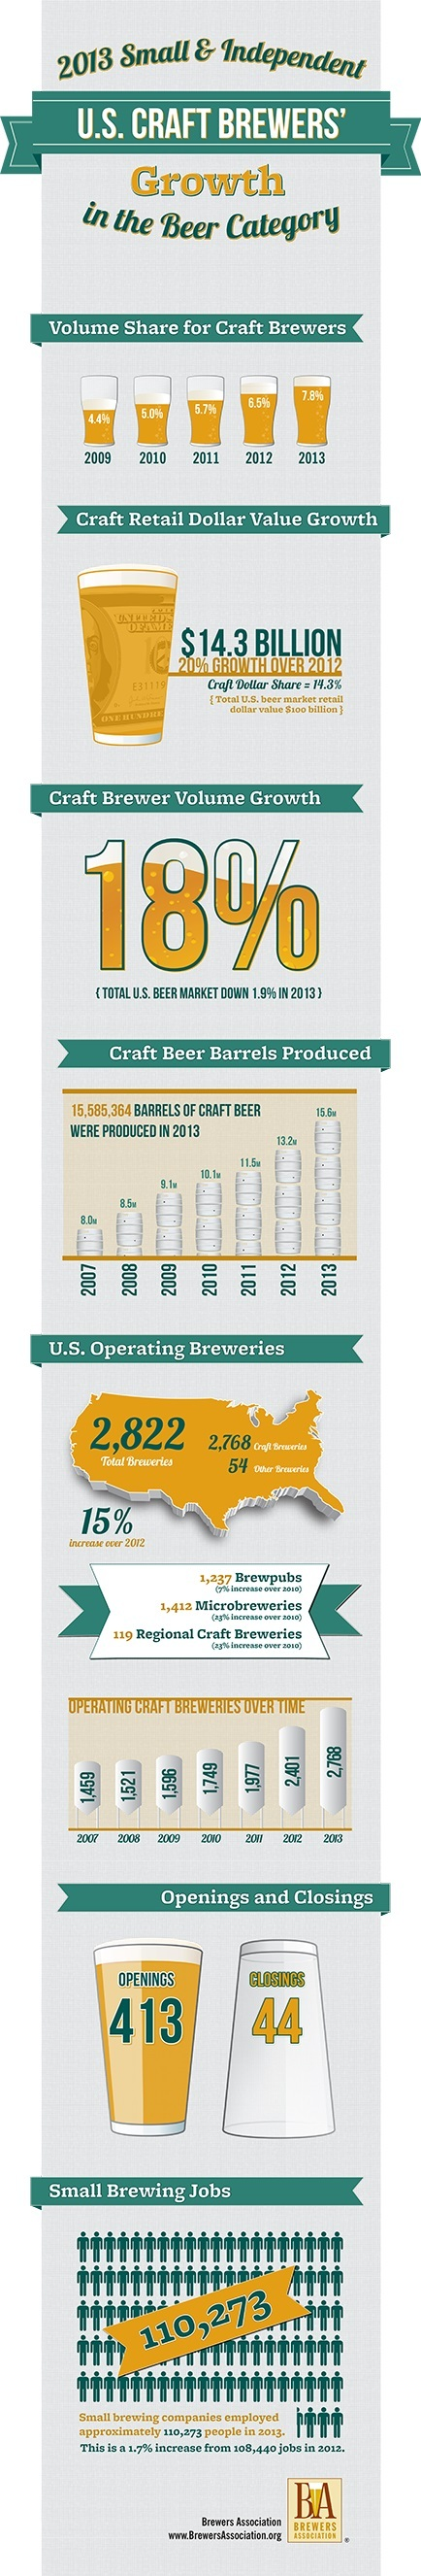 Small and Independent U.S. Craft Brewers Growth in 2013. (Graphic: Business Wire)